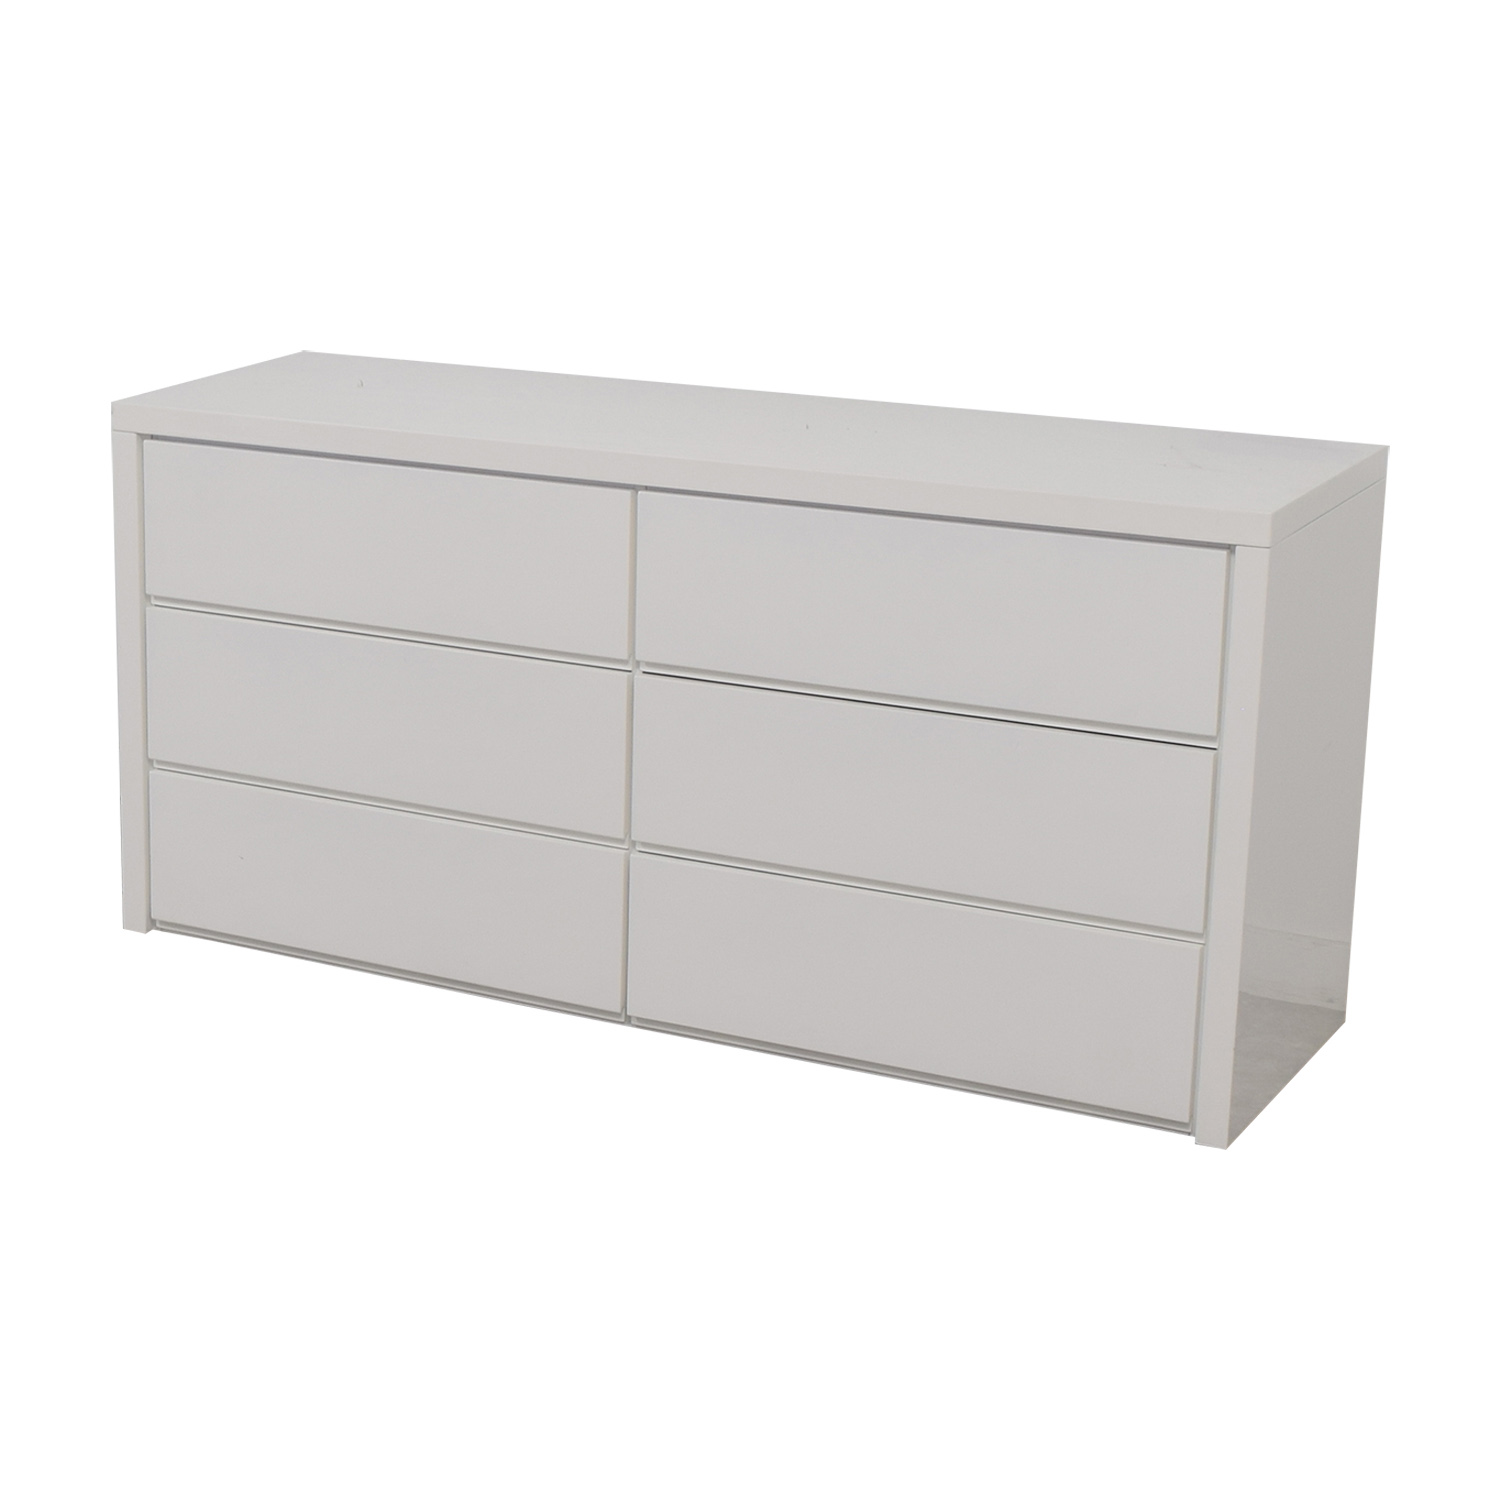 Modani Modani Dino White Six-Drawer Dresser price